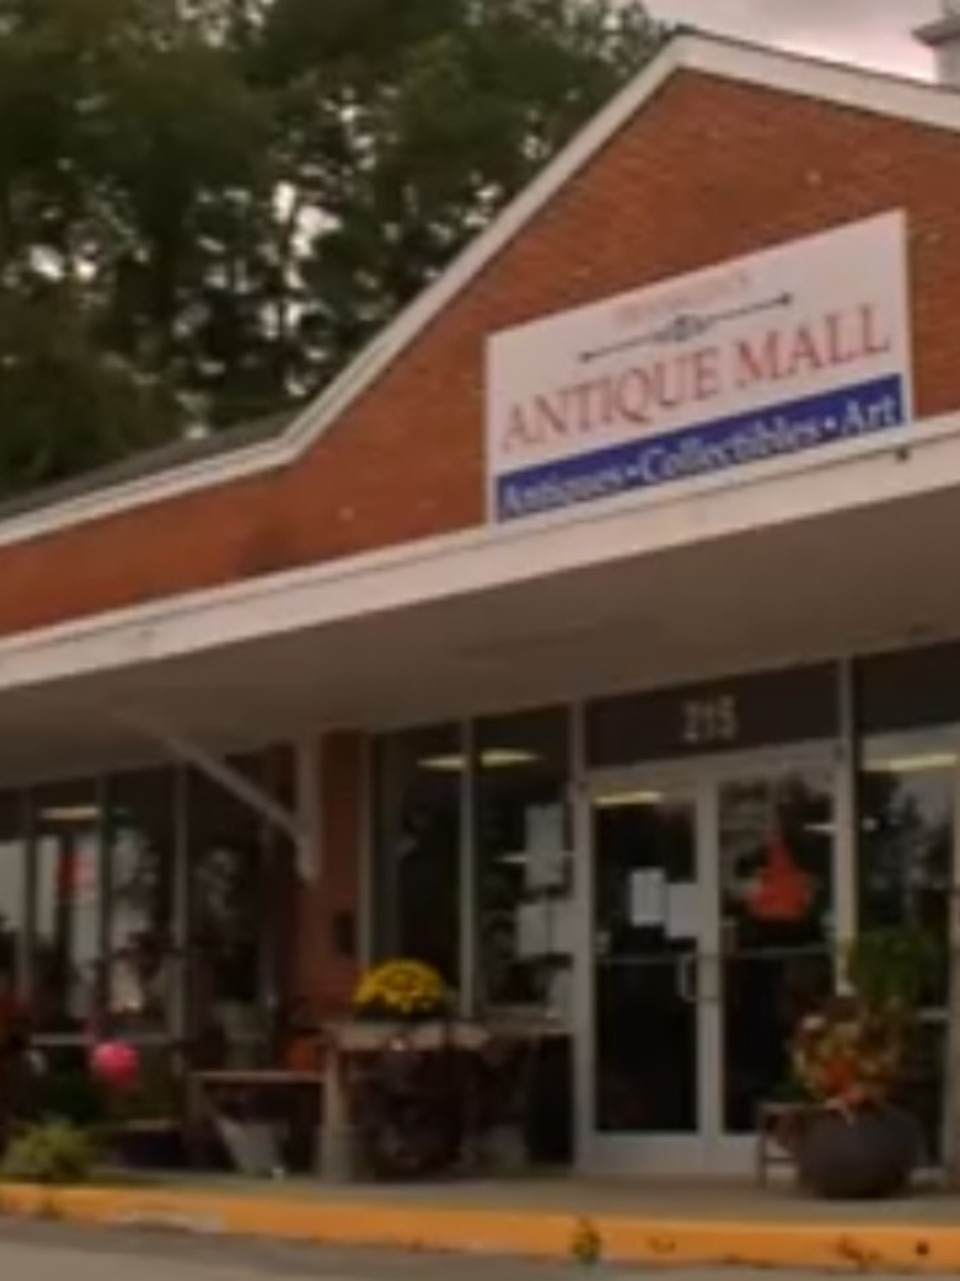 Antique Stores In Florence Sc Elegant Franklin S Antique Mall Reopens after Florence